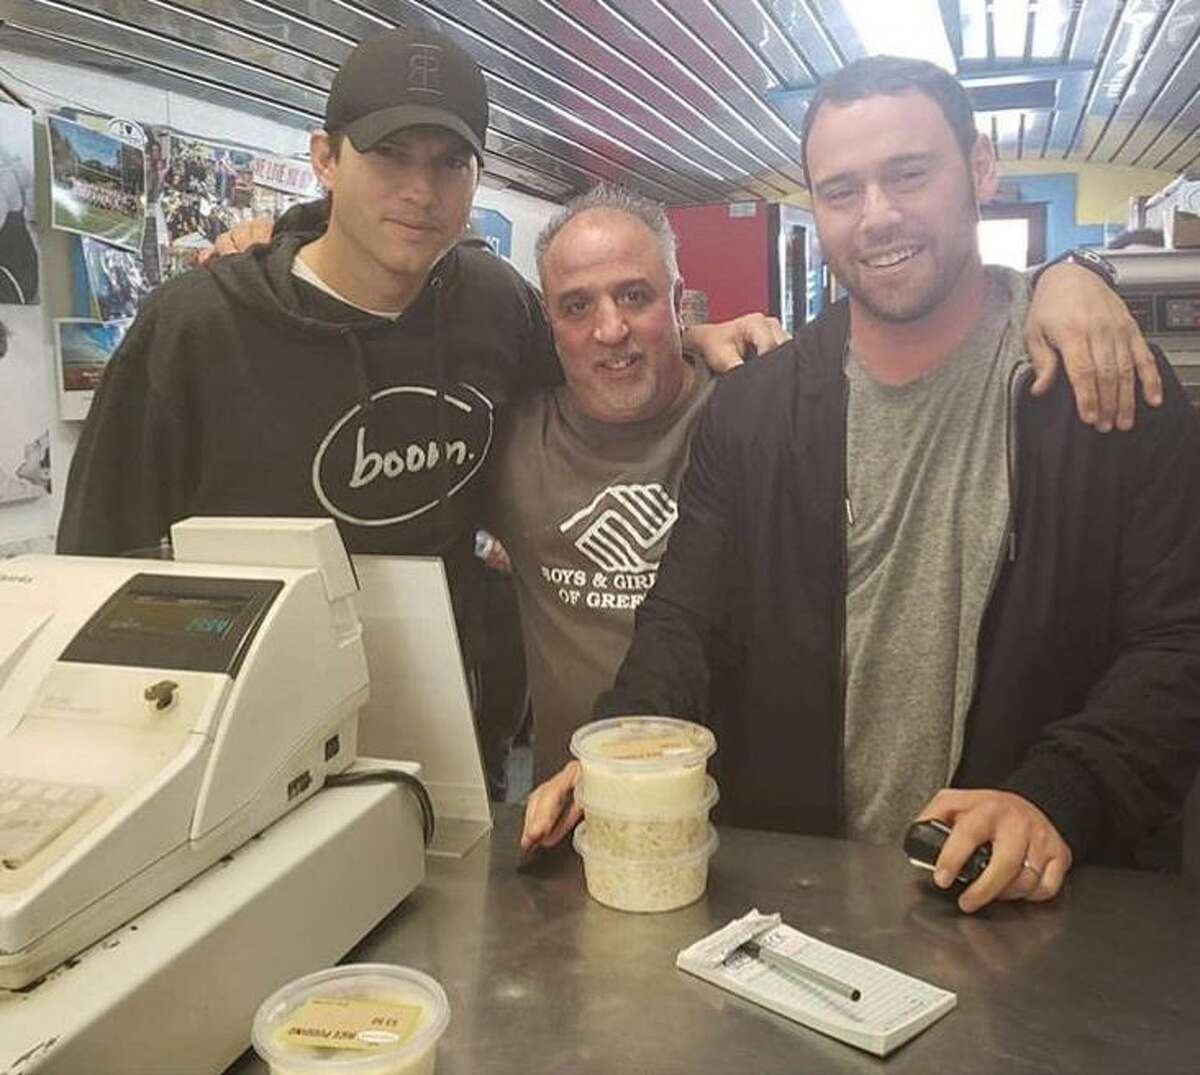 Actor Ashton Kutcher, left, and Cos Cob native and talent manager to the stars Scooter Braun, right, with Garden Catering manager Michael Paoletta at Garden Catering in Old Greenwich on Thursday afternoon.